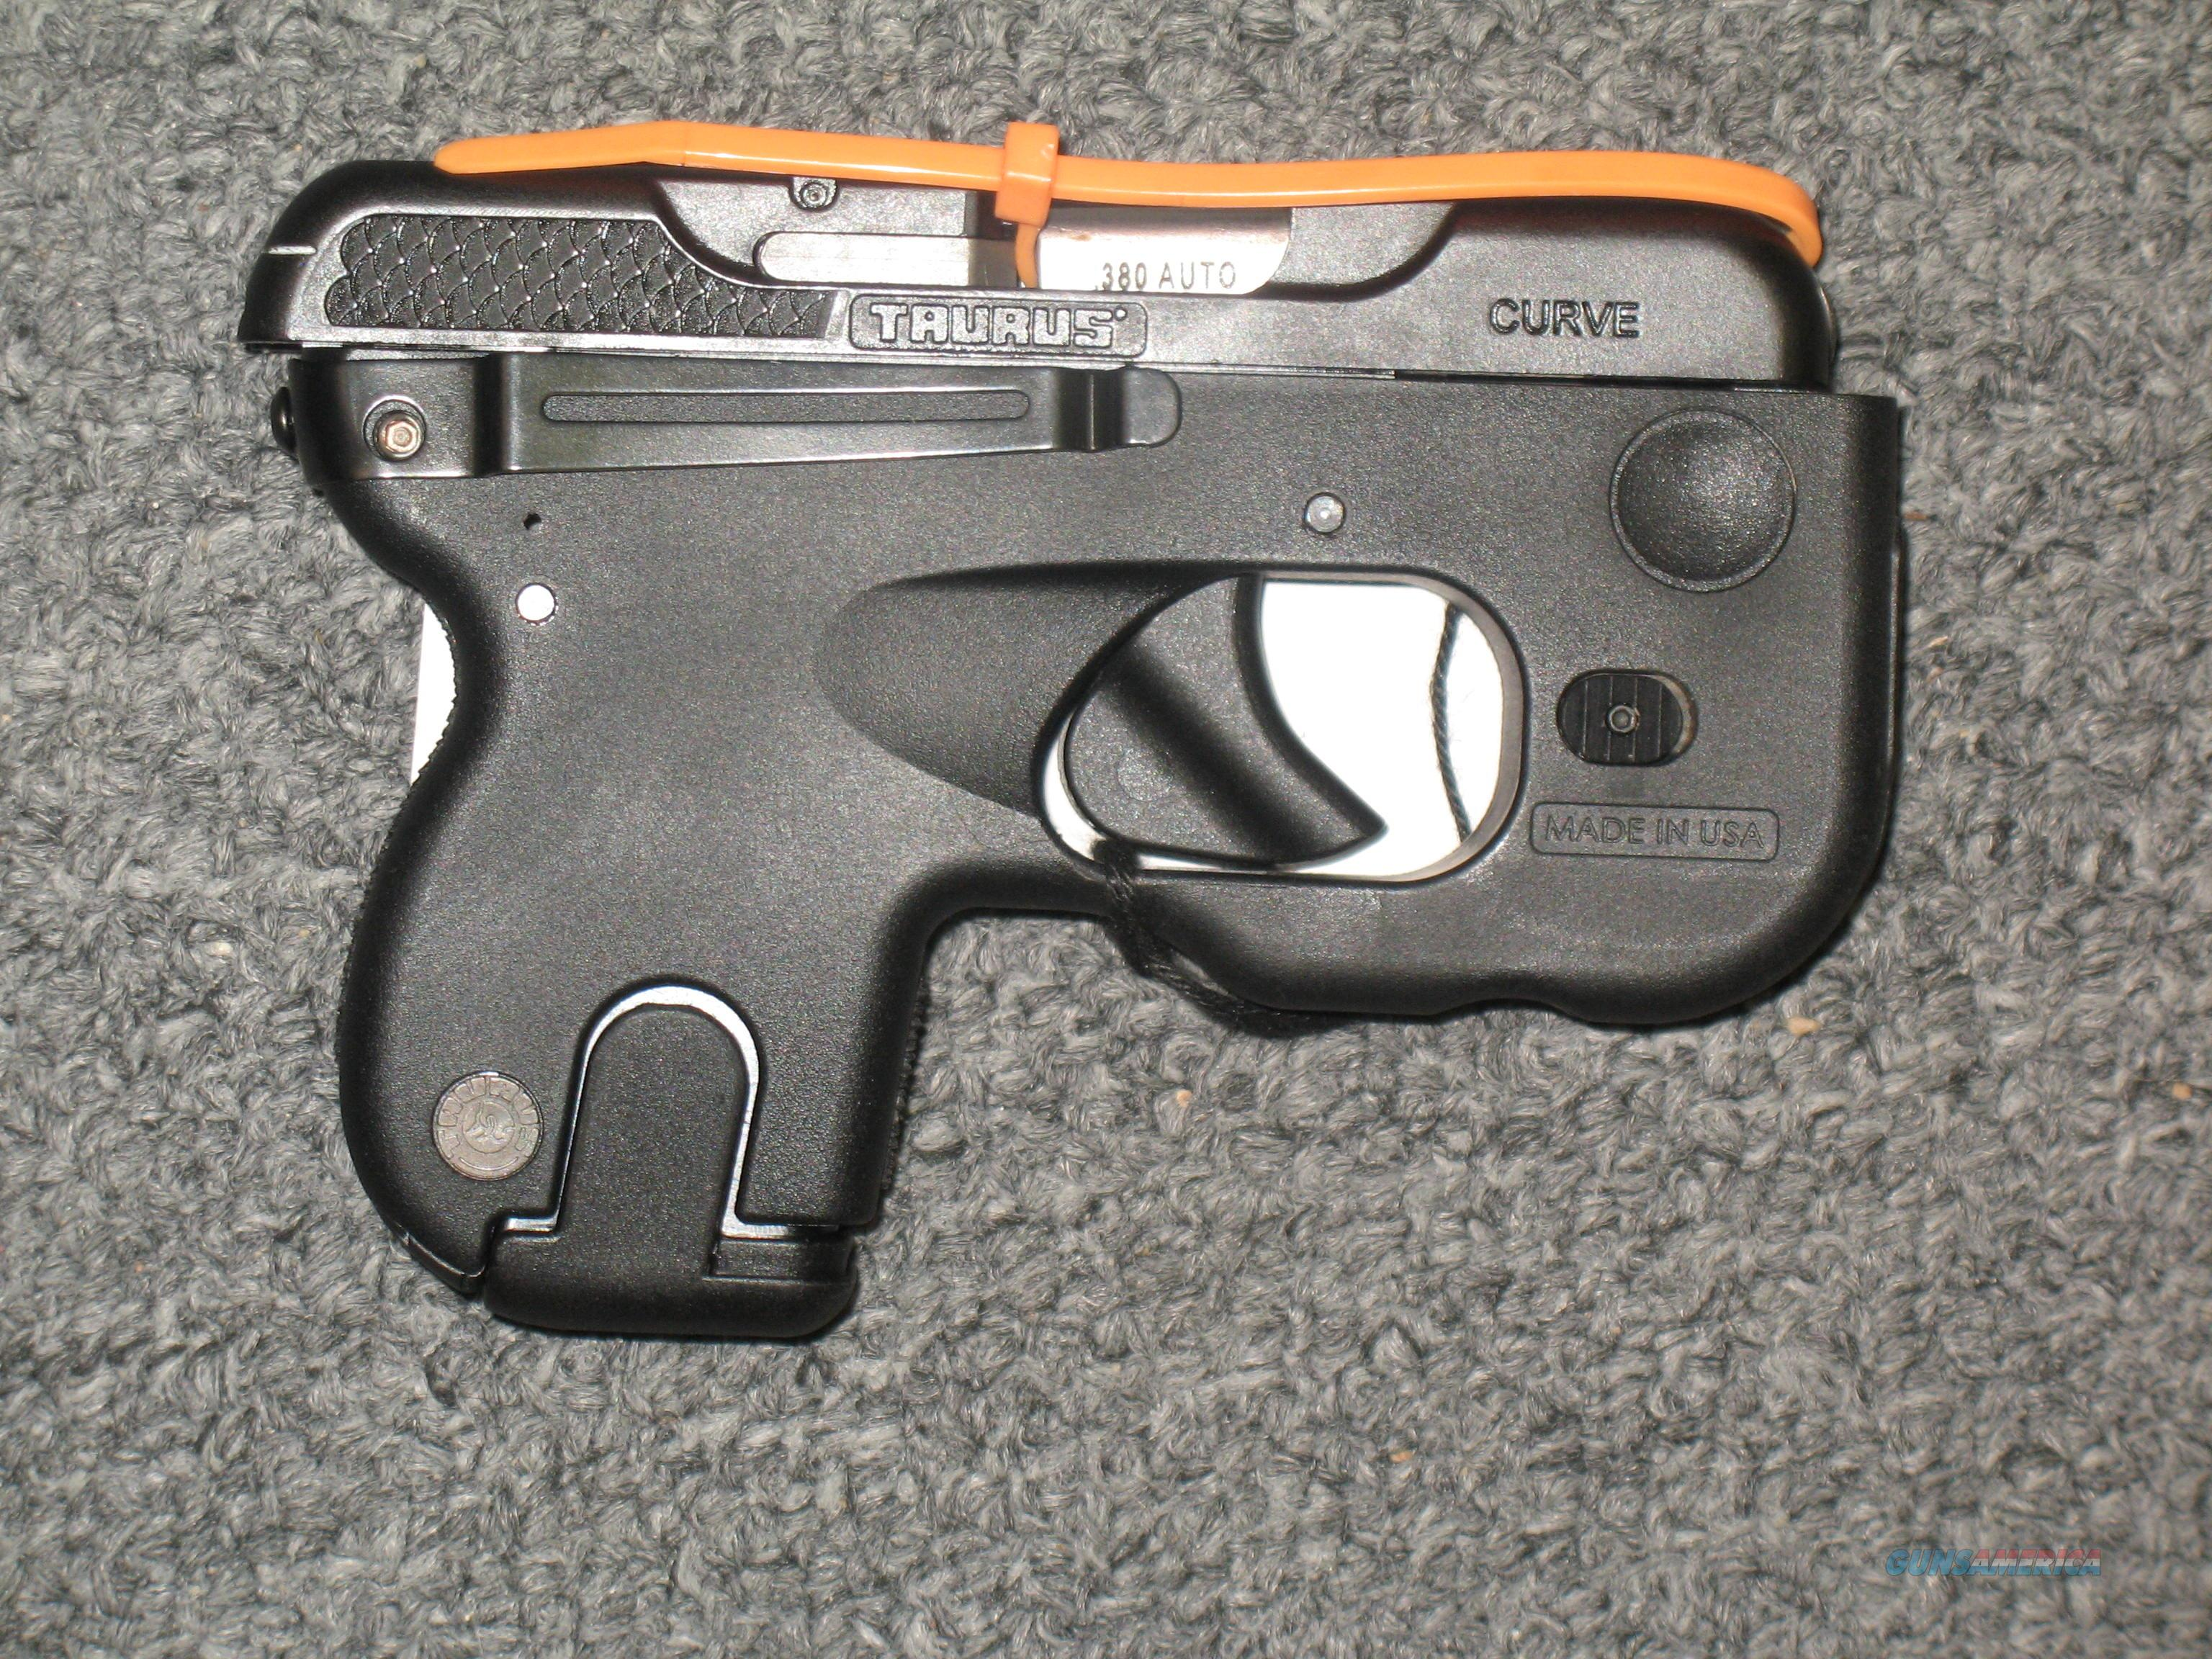 Taurus Curve .380acp (with Laser and Flashlight)  Guns > Pistols > Taurus Pistols > Semi Auto Pistols > Polymer Frame